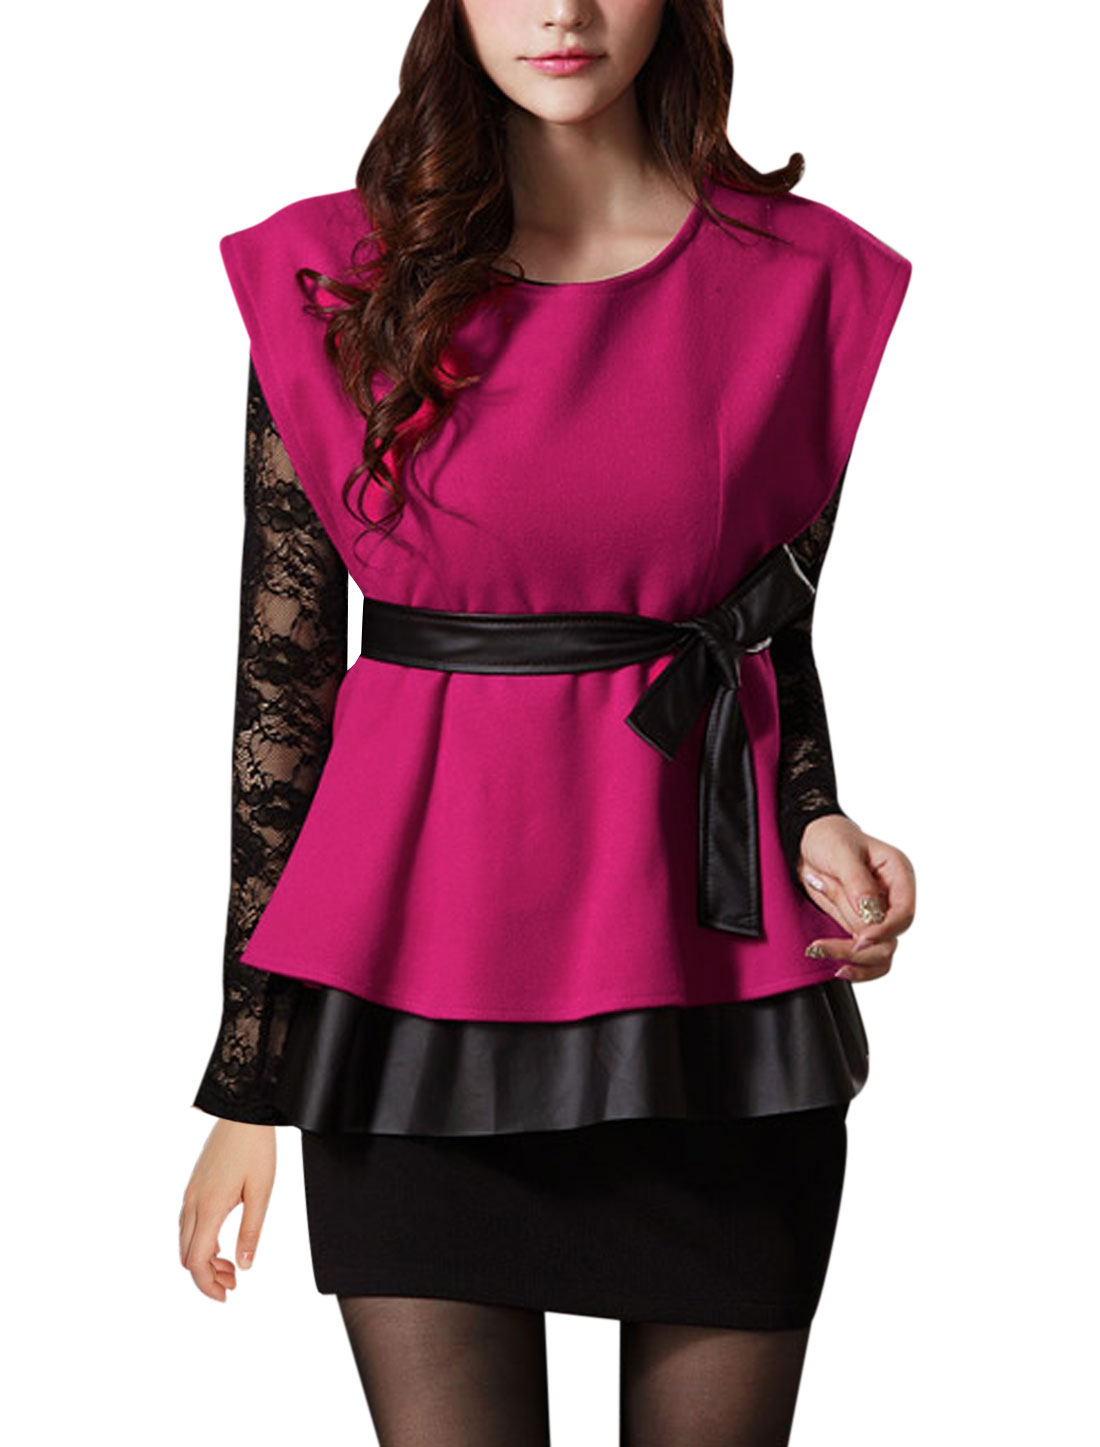 Lady Faux Leather Panel Peplum Top w Waist Strap Fuchsia S